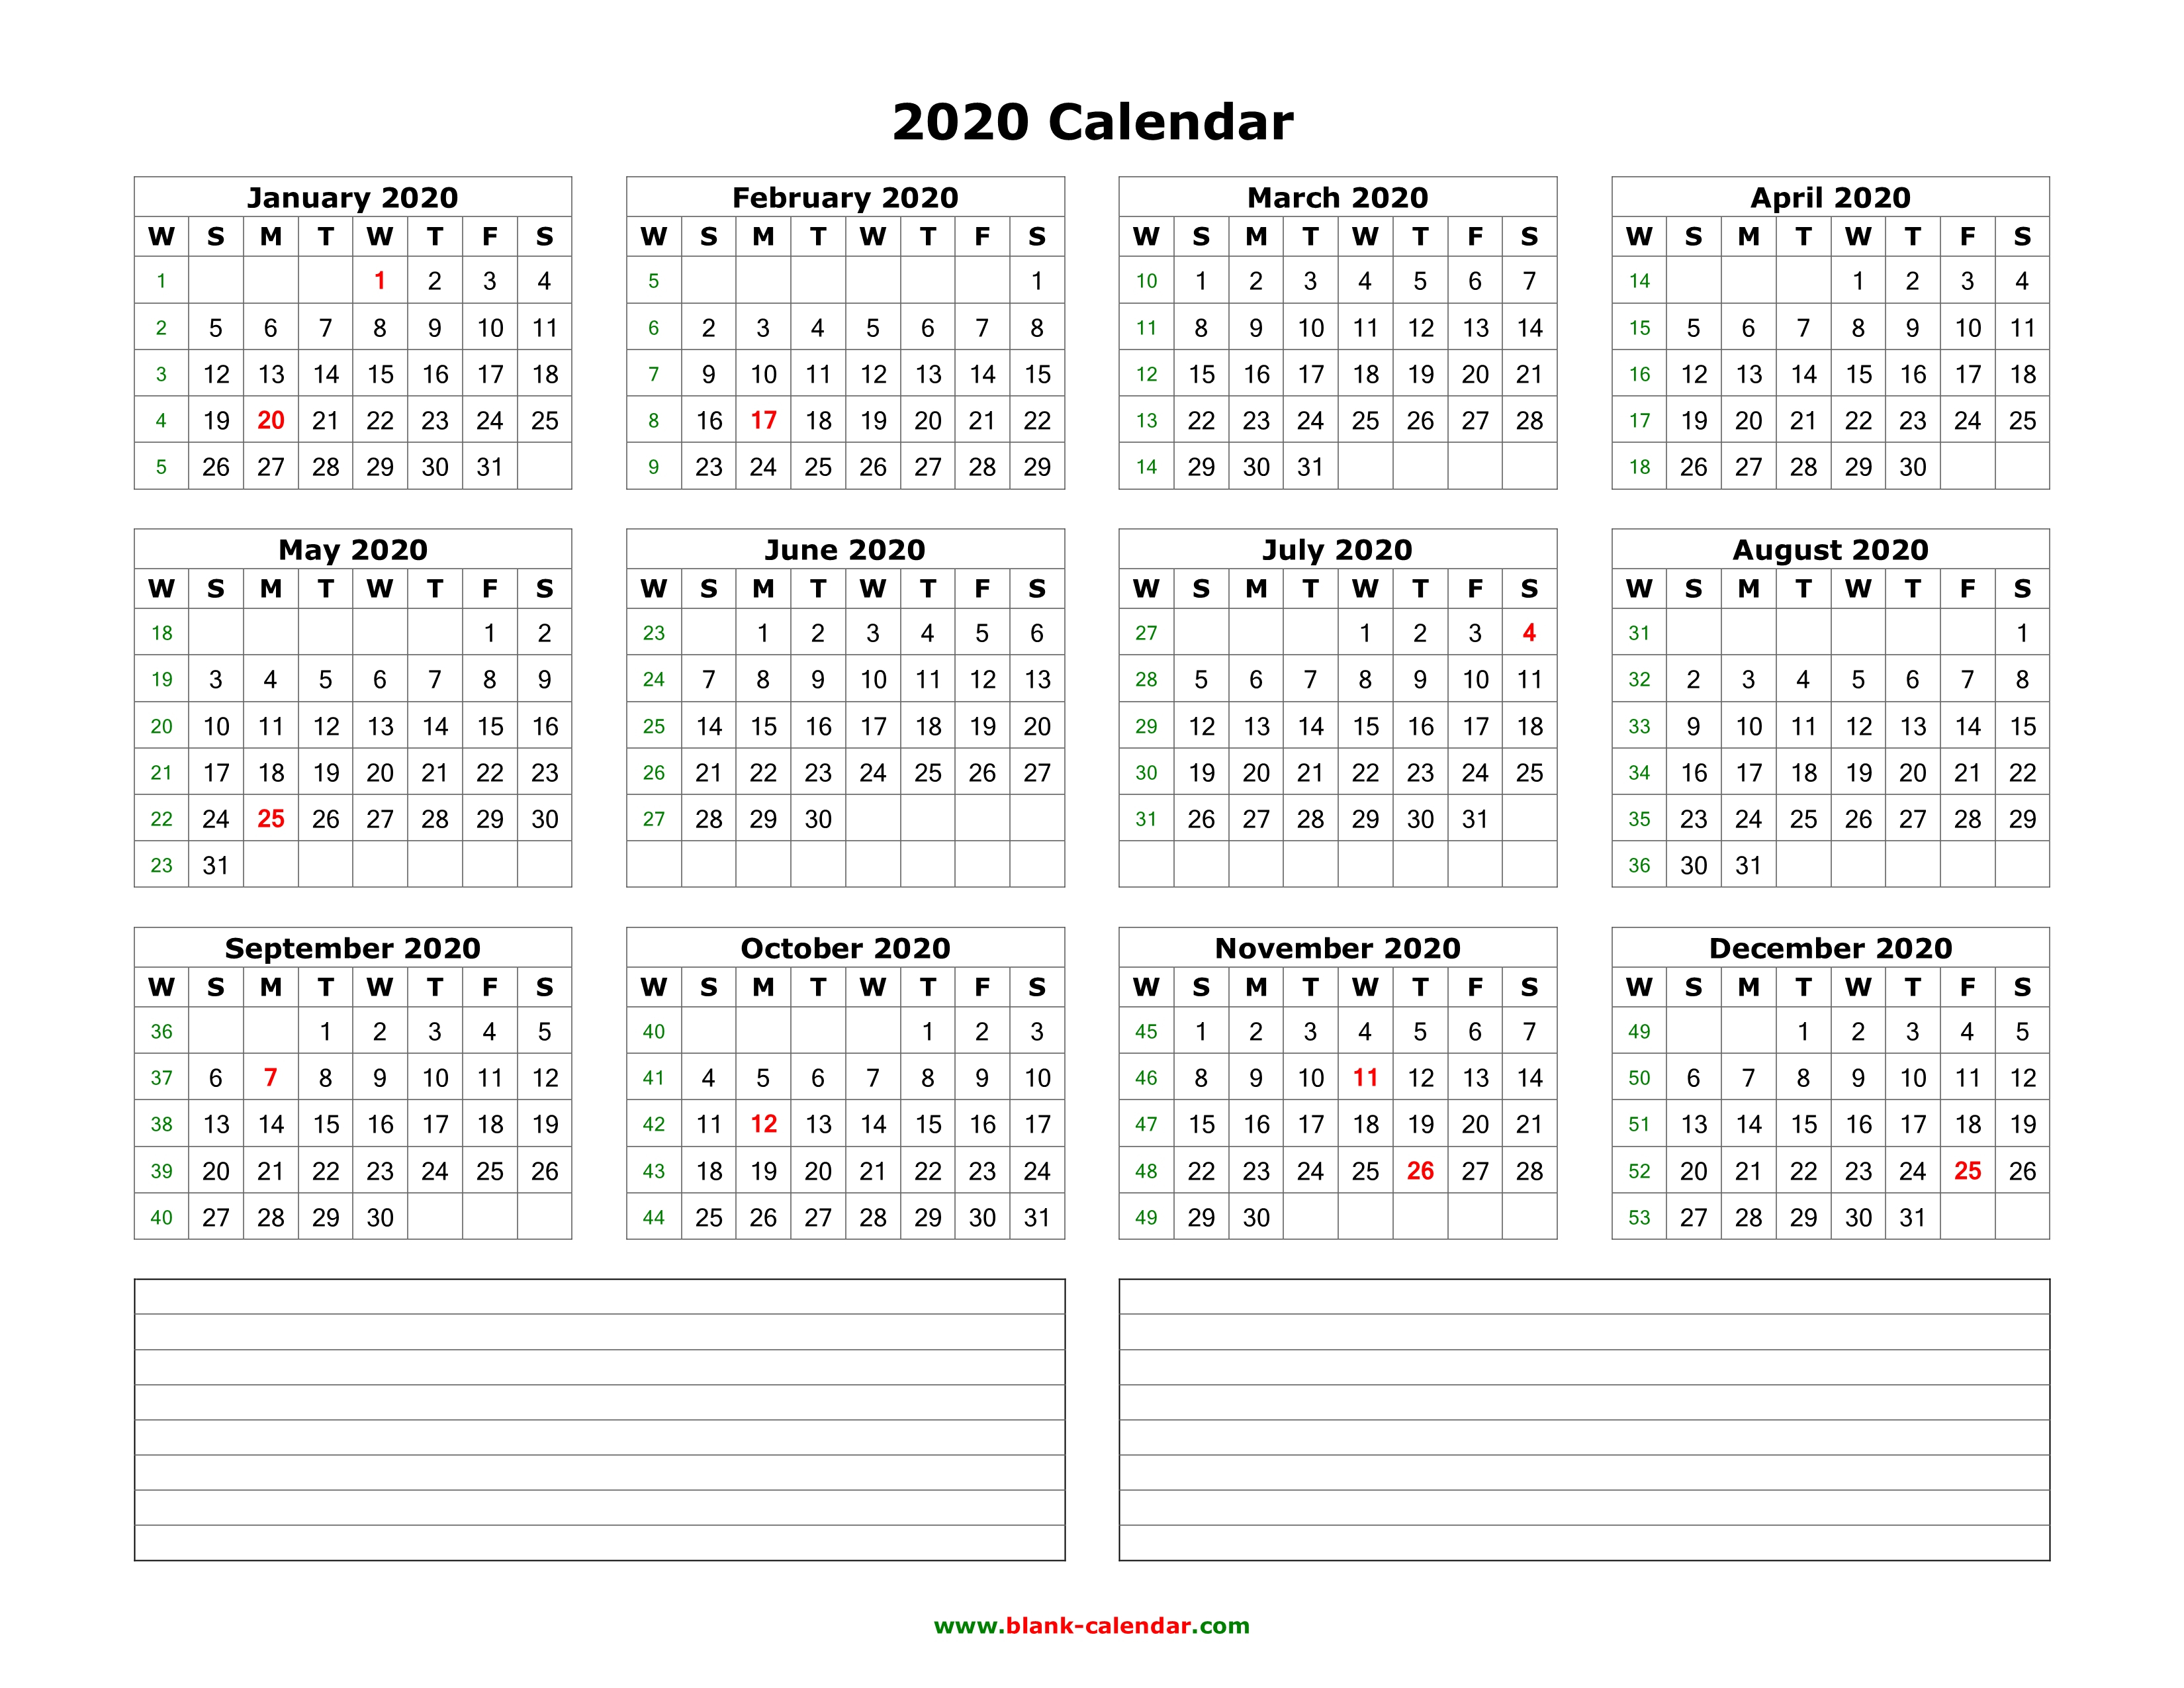 Download Blank Calendar 2020 With Space For Notes (12 Months On One with regard to Year Calendar 2020 With Space To Write